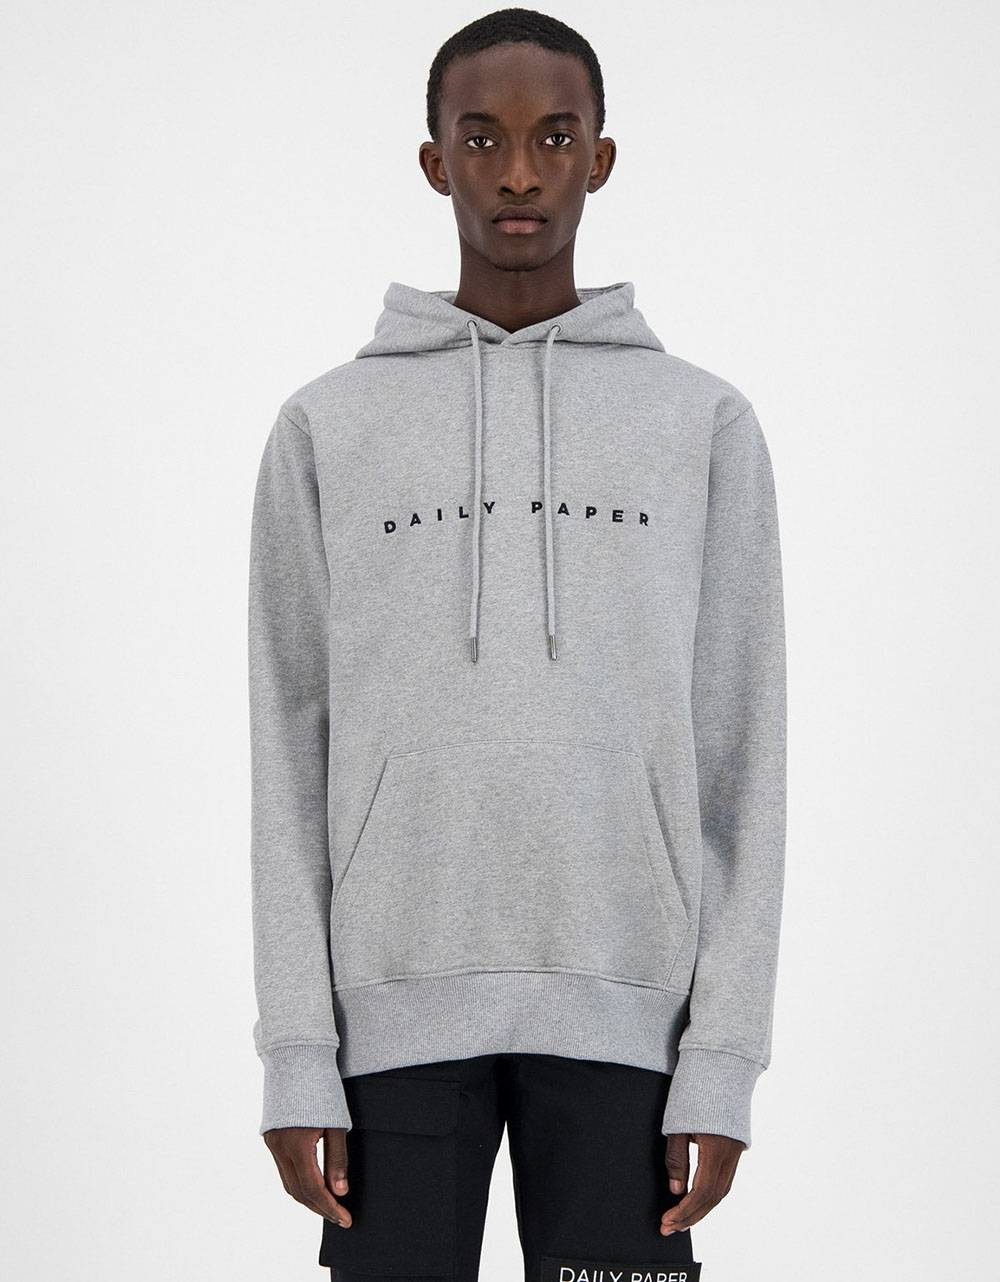 Daily Paper Alias Hoodie - Grey/Black DAILY PAPER Sweater 94,26 €